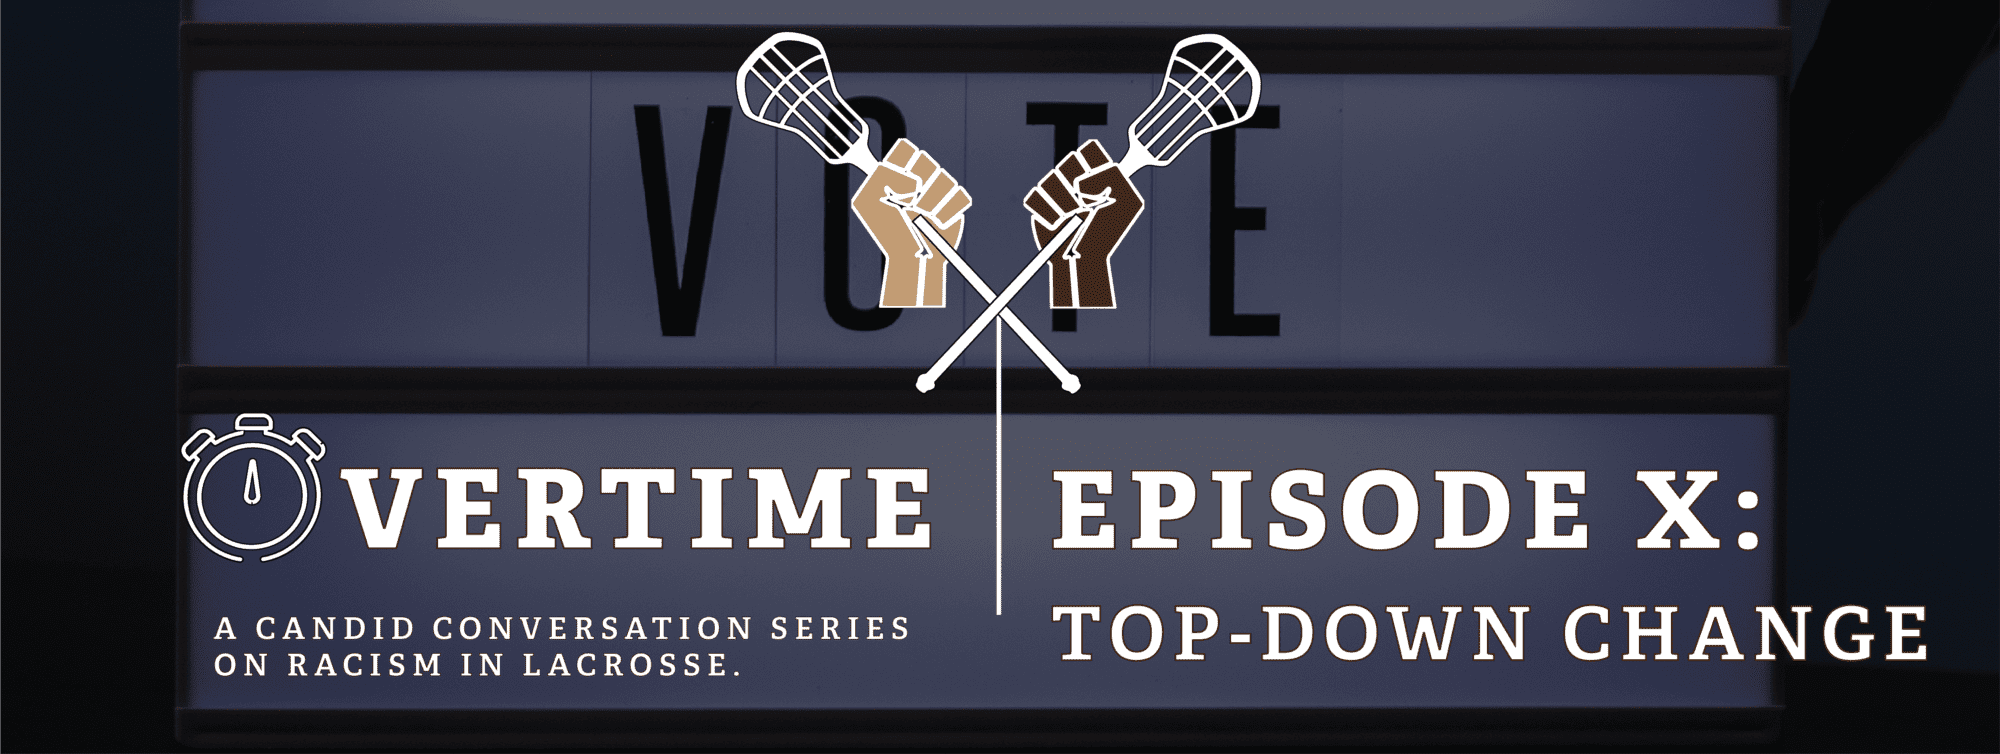 Overtime Episode 10 - Top Down Change